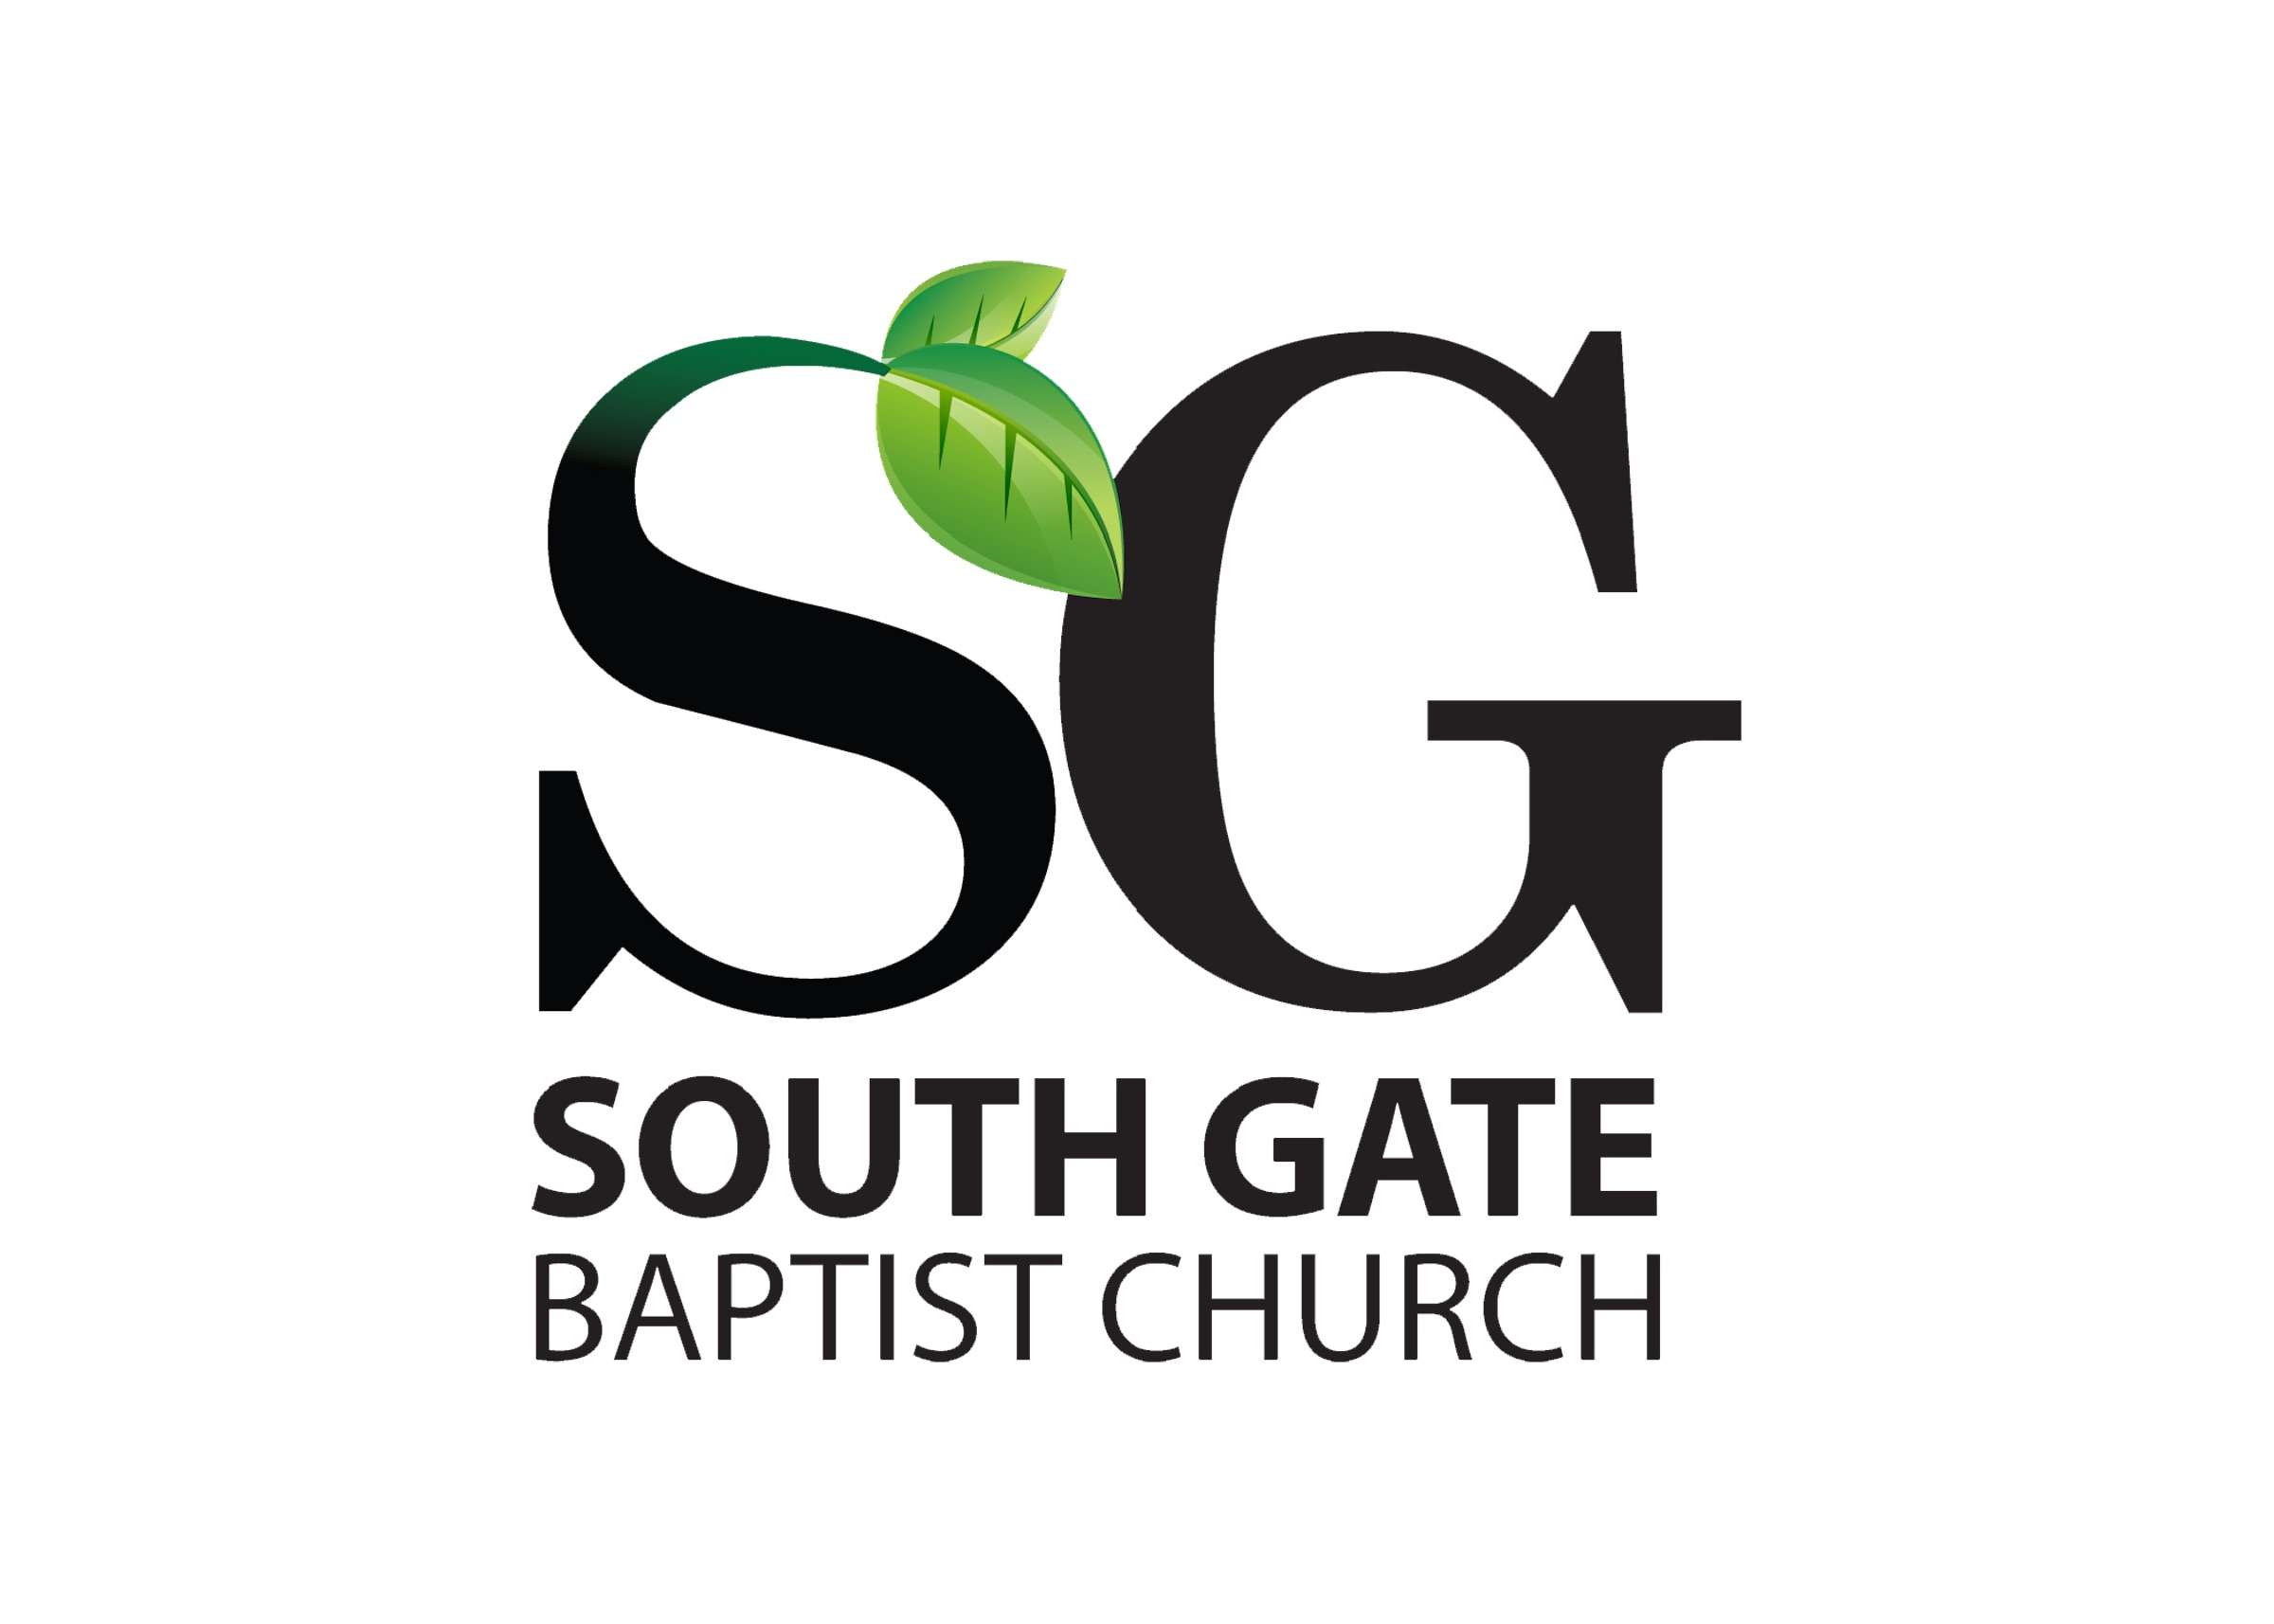 South Gate Baptist Church